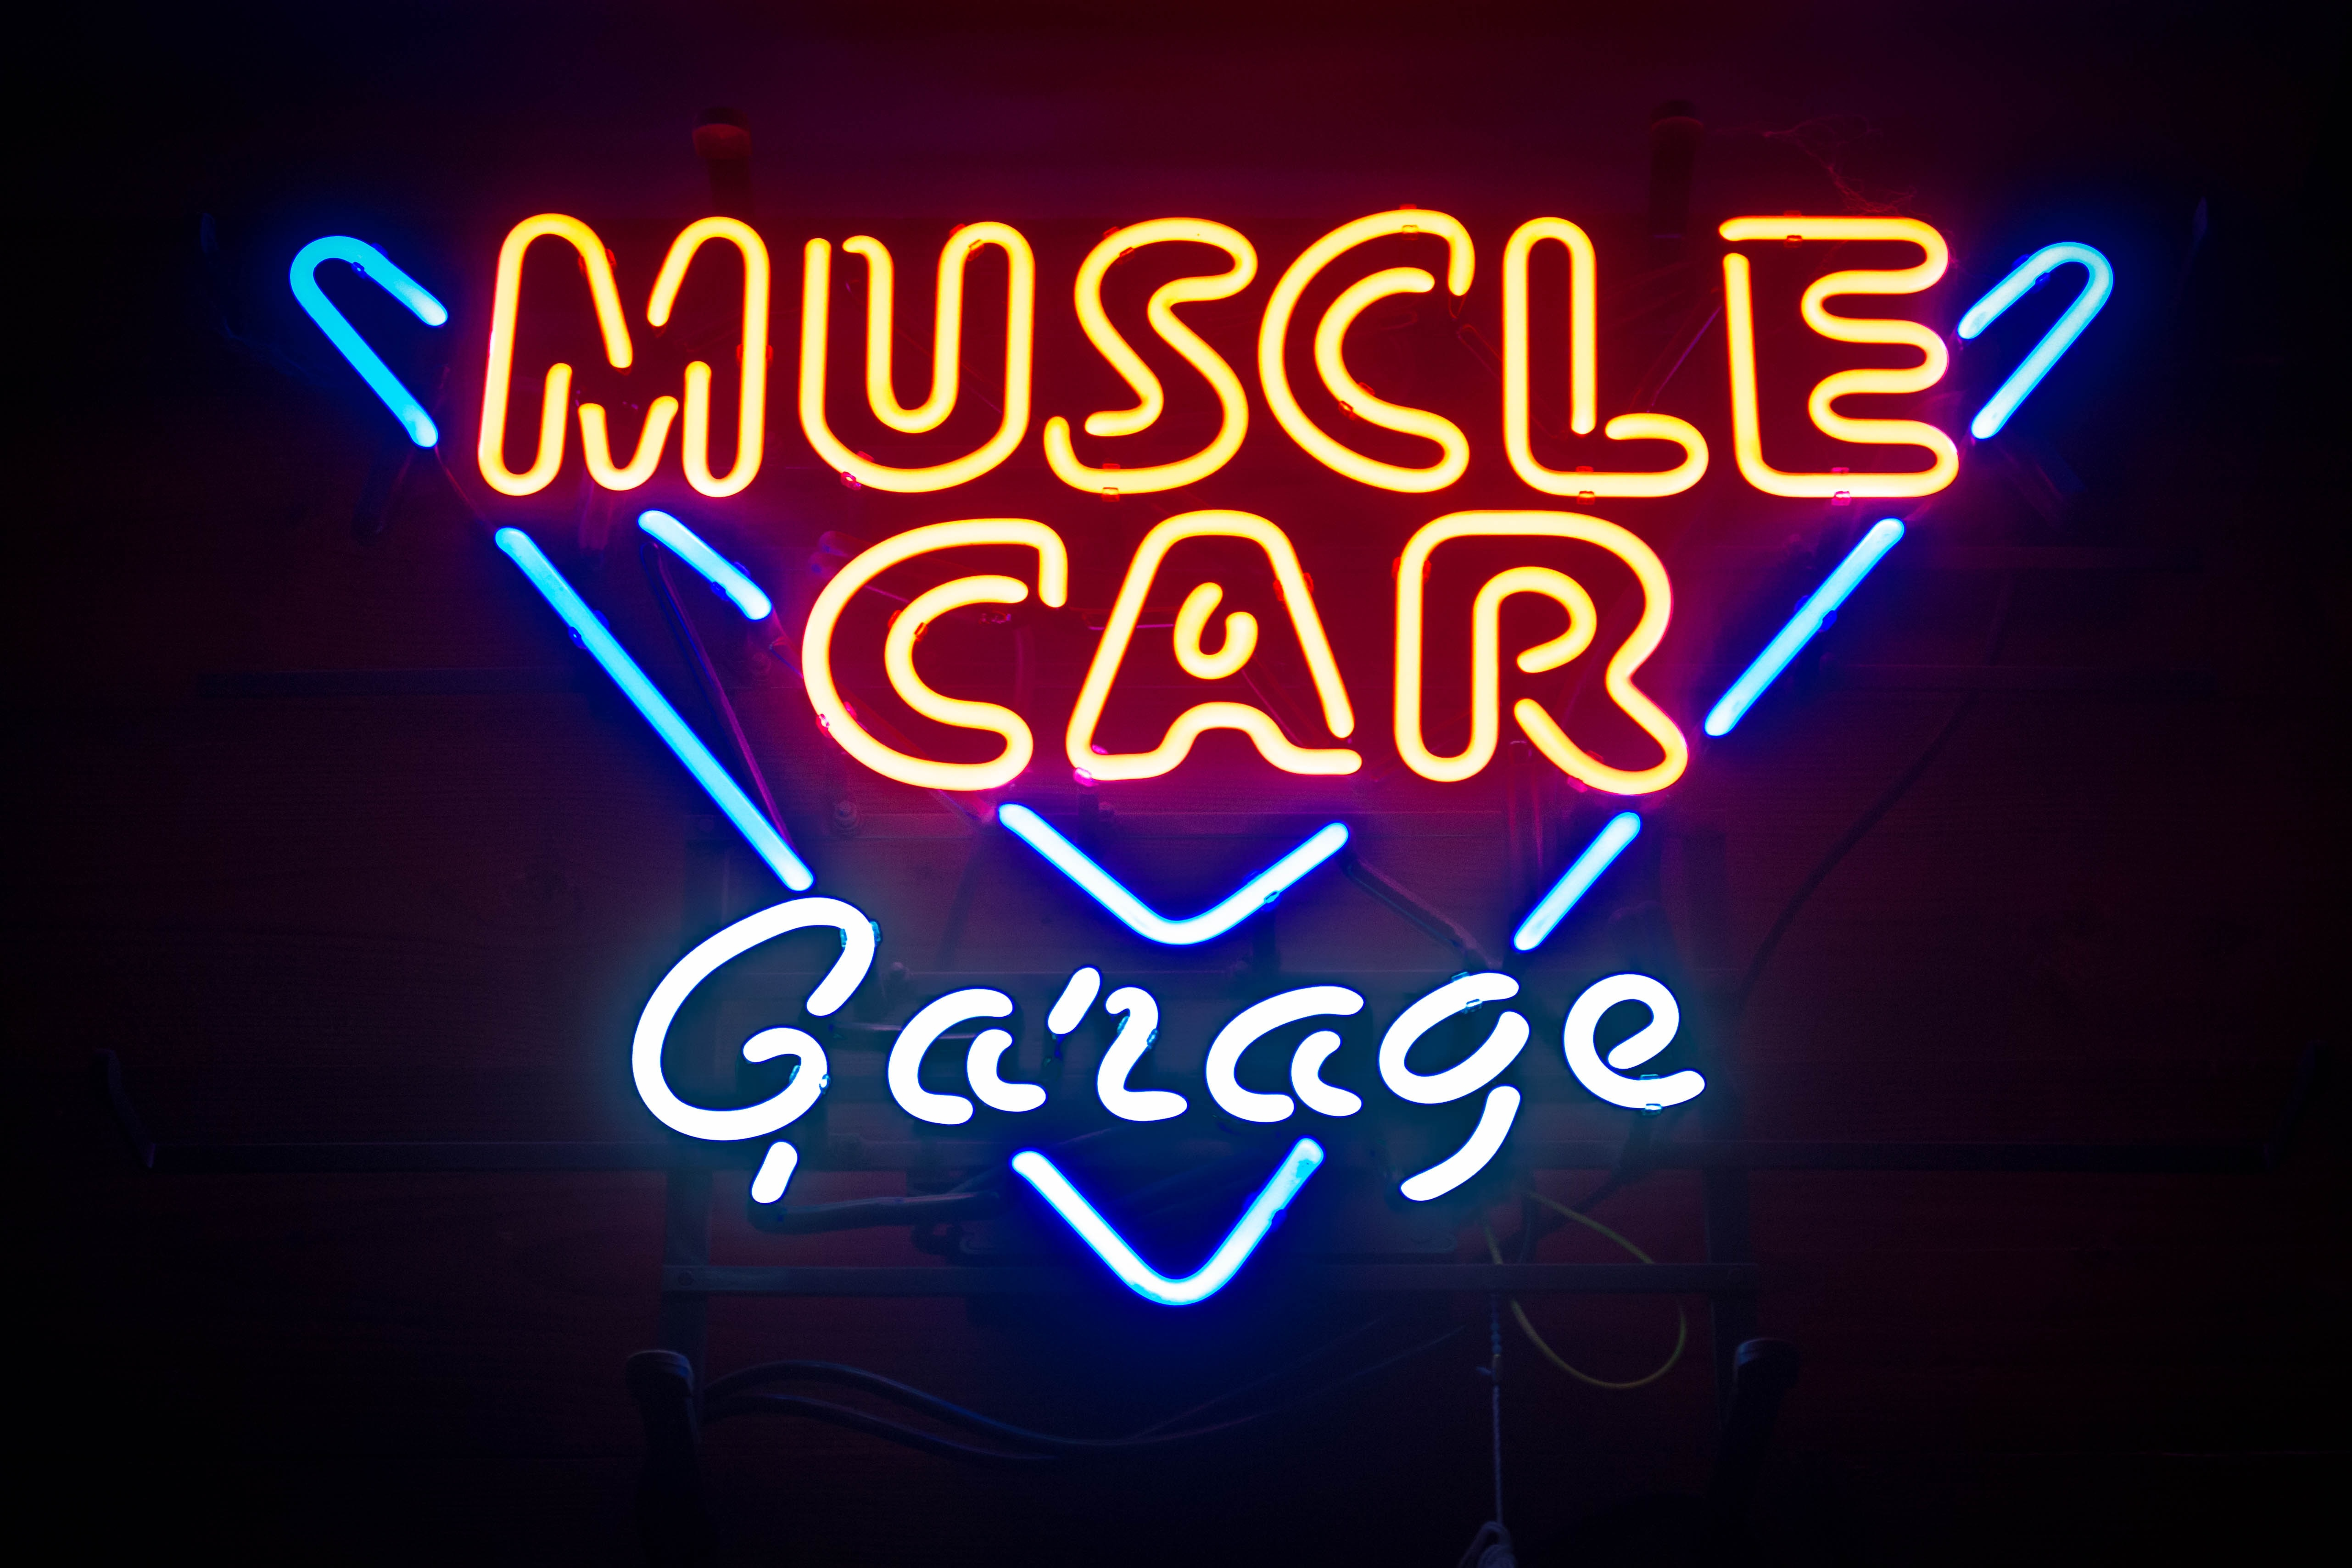 Blue And Red Neon Sign For A Muscle Car Garage Seen At Night